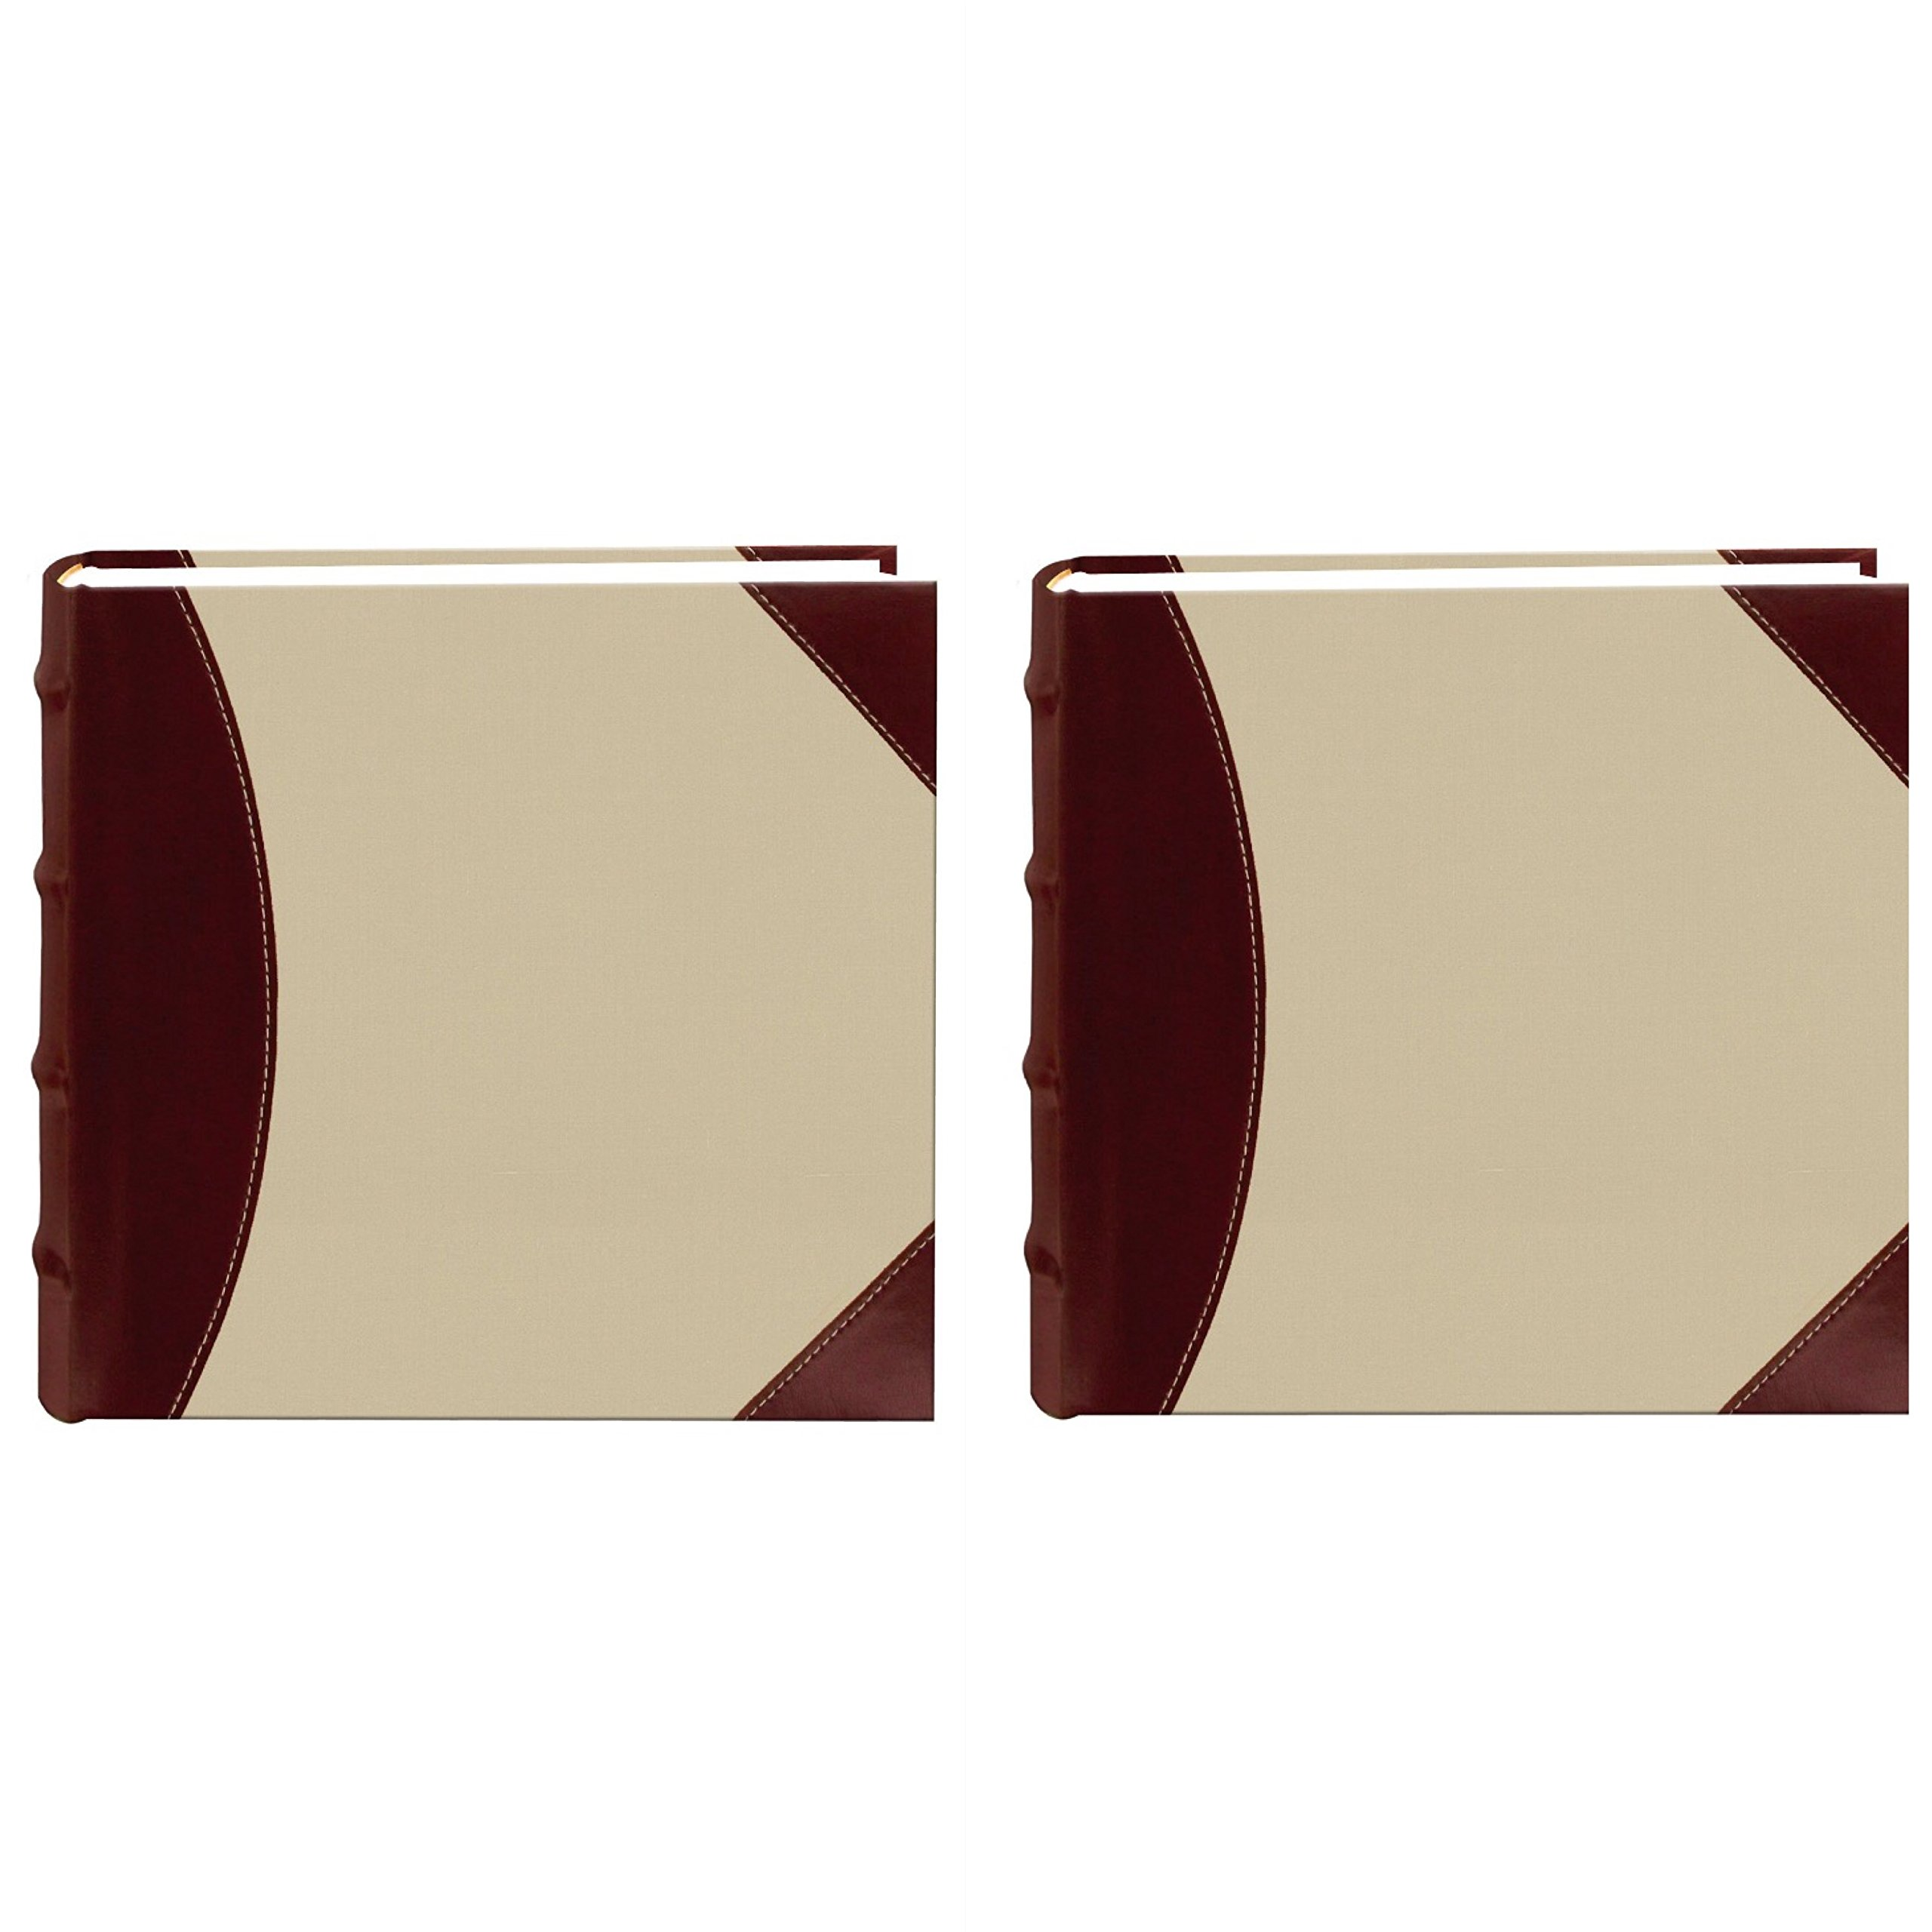 Pioneer Photo Albums 639300 Fabric/Leatherette 300 Photo Album 4X6 2-UP Beige Brown (2) by pioneer photo Albaums (Image #1)